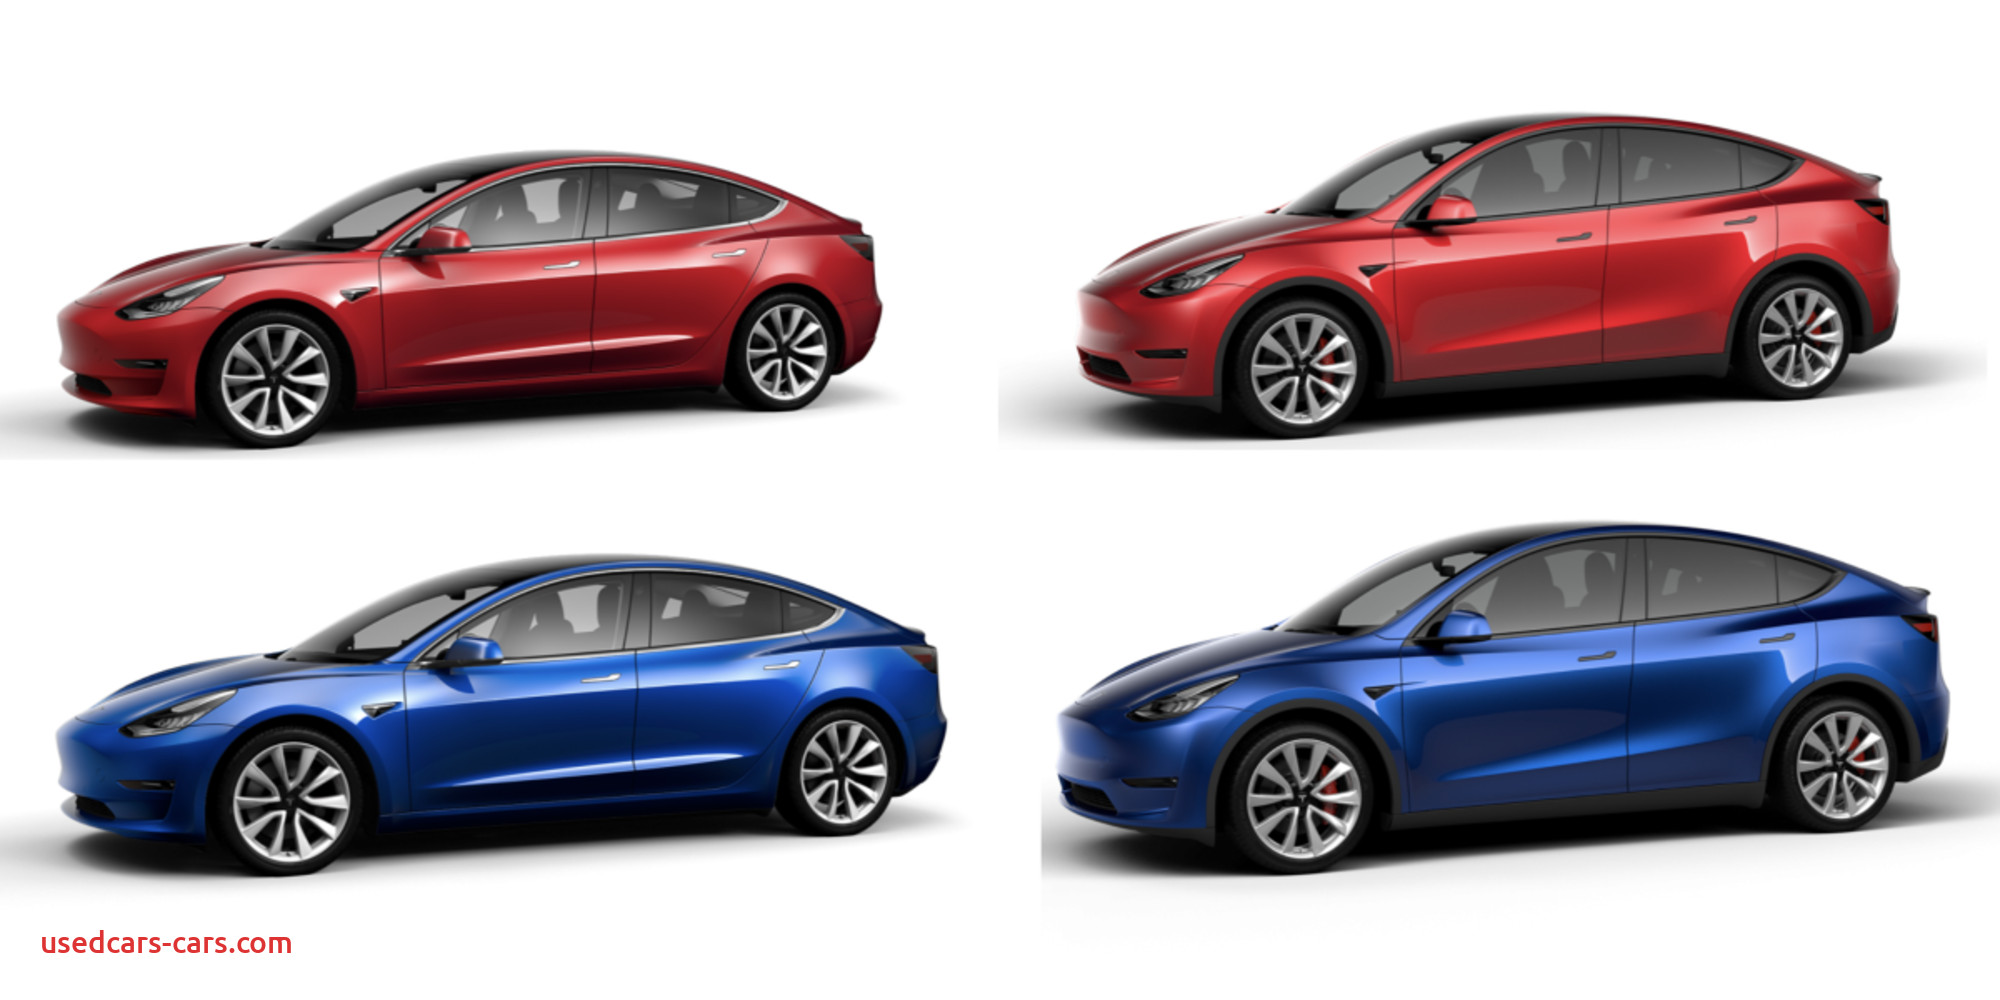 Tesla Y Vs 3 Elegant Tesla Model Y Vs Tesla Model 3 How Do they Compare